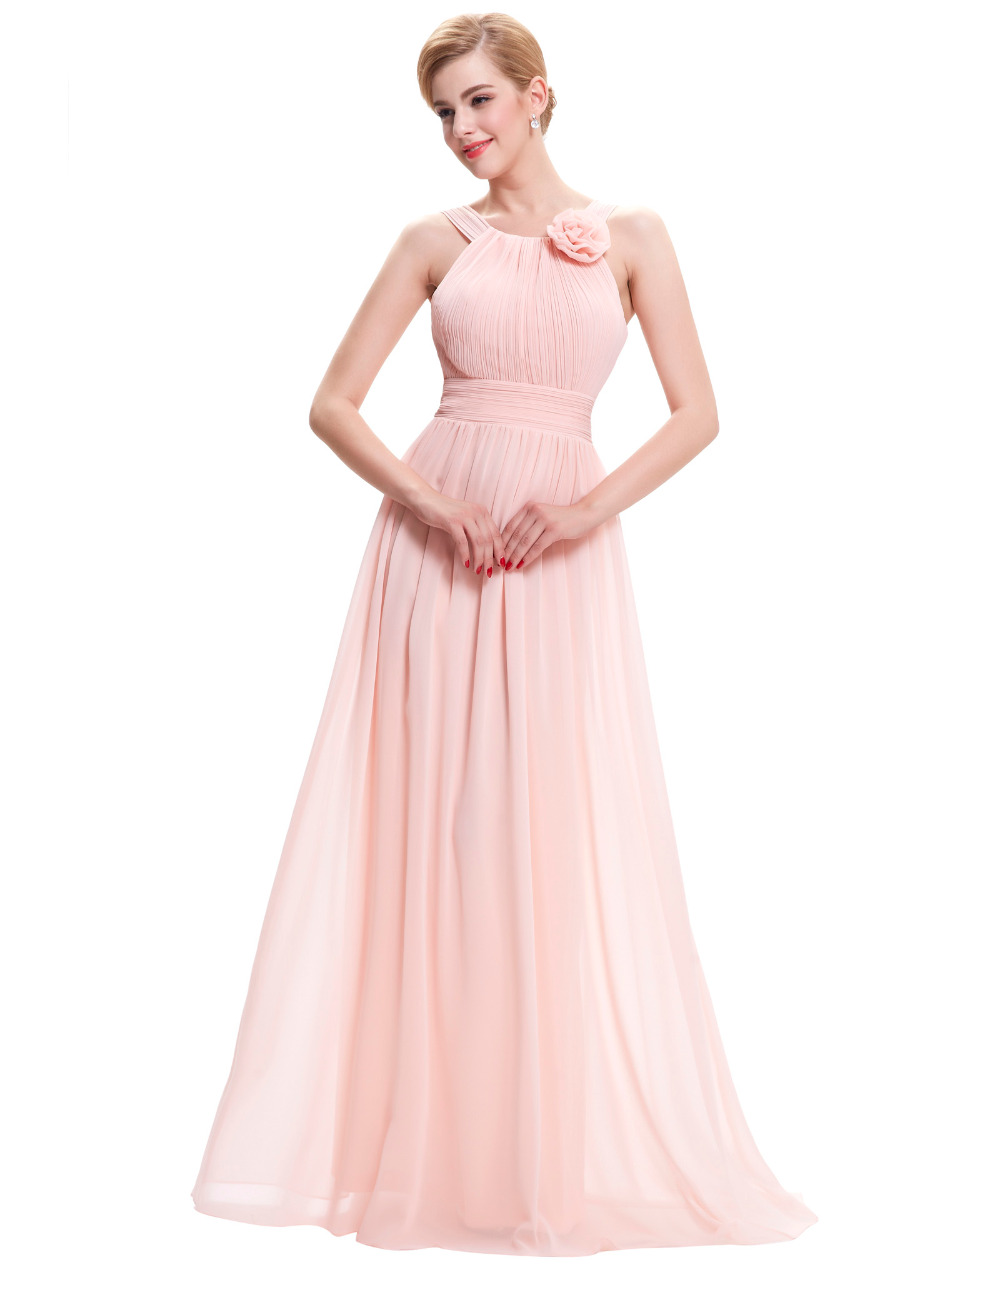 Long pink evening dress 2016 new arrival formal dresses for Formal dress for women wedding